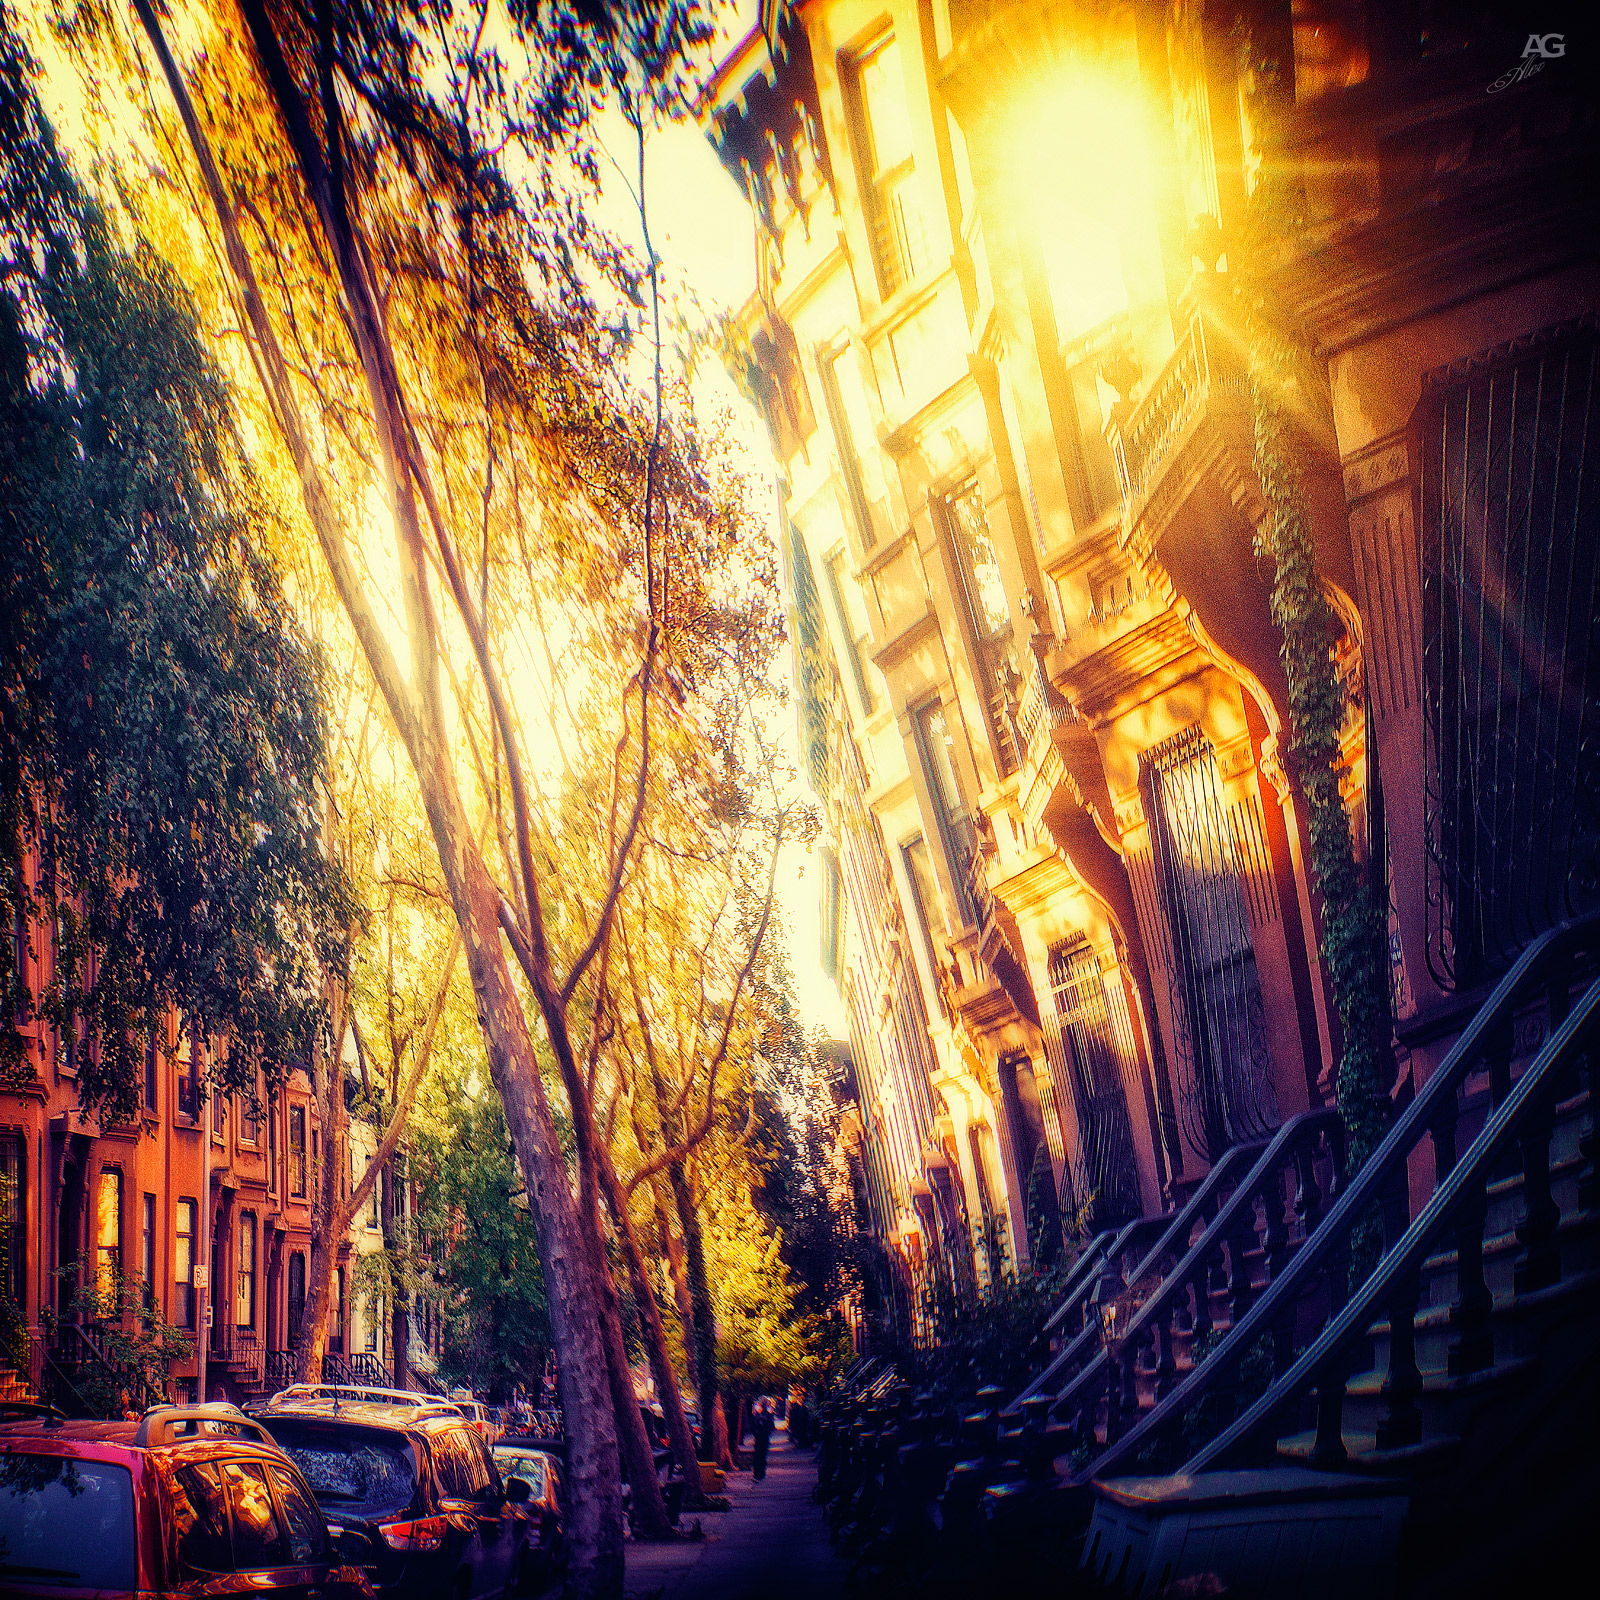 BrooklyNStrretInASunsetLight_warped_1600